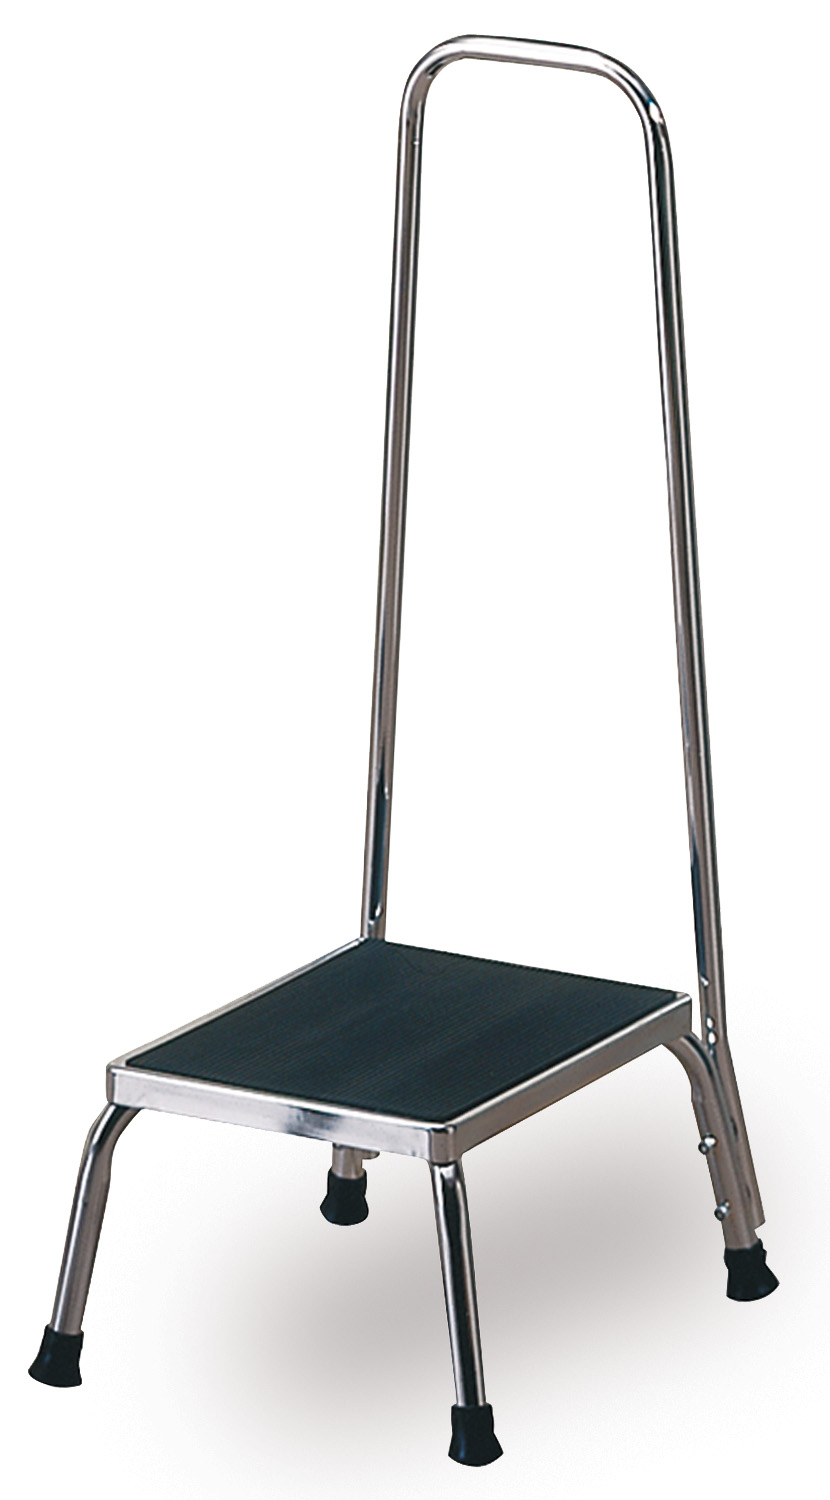 Techno Aide Step Stool With Handrail